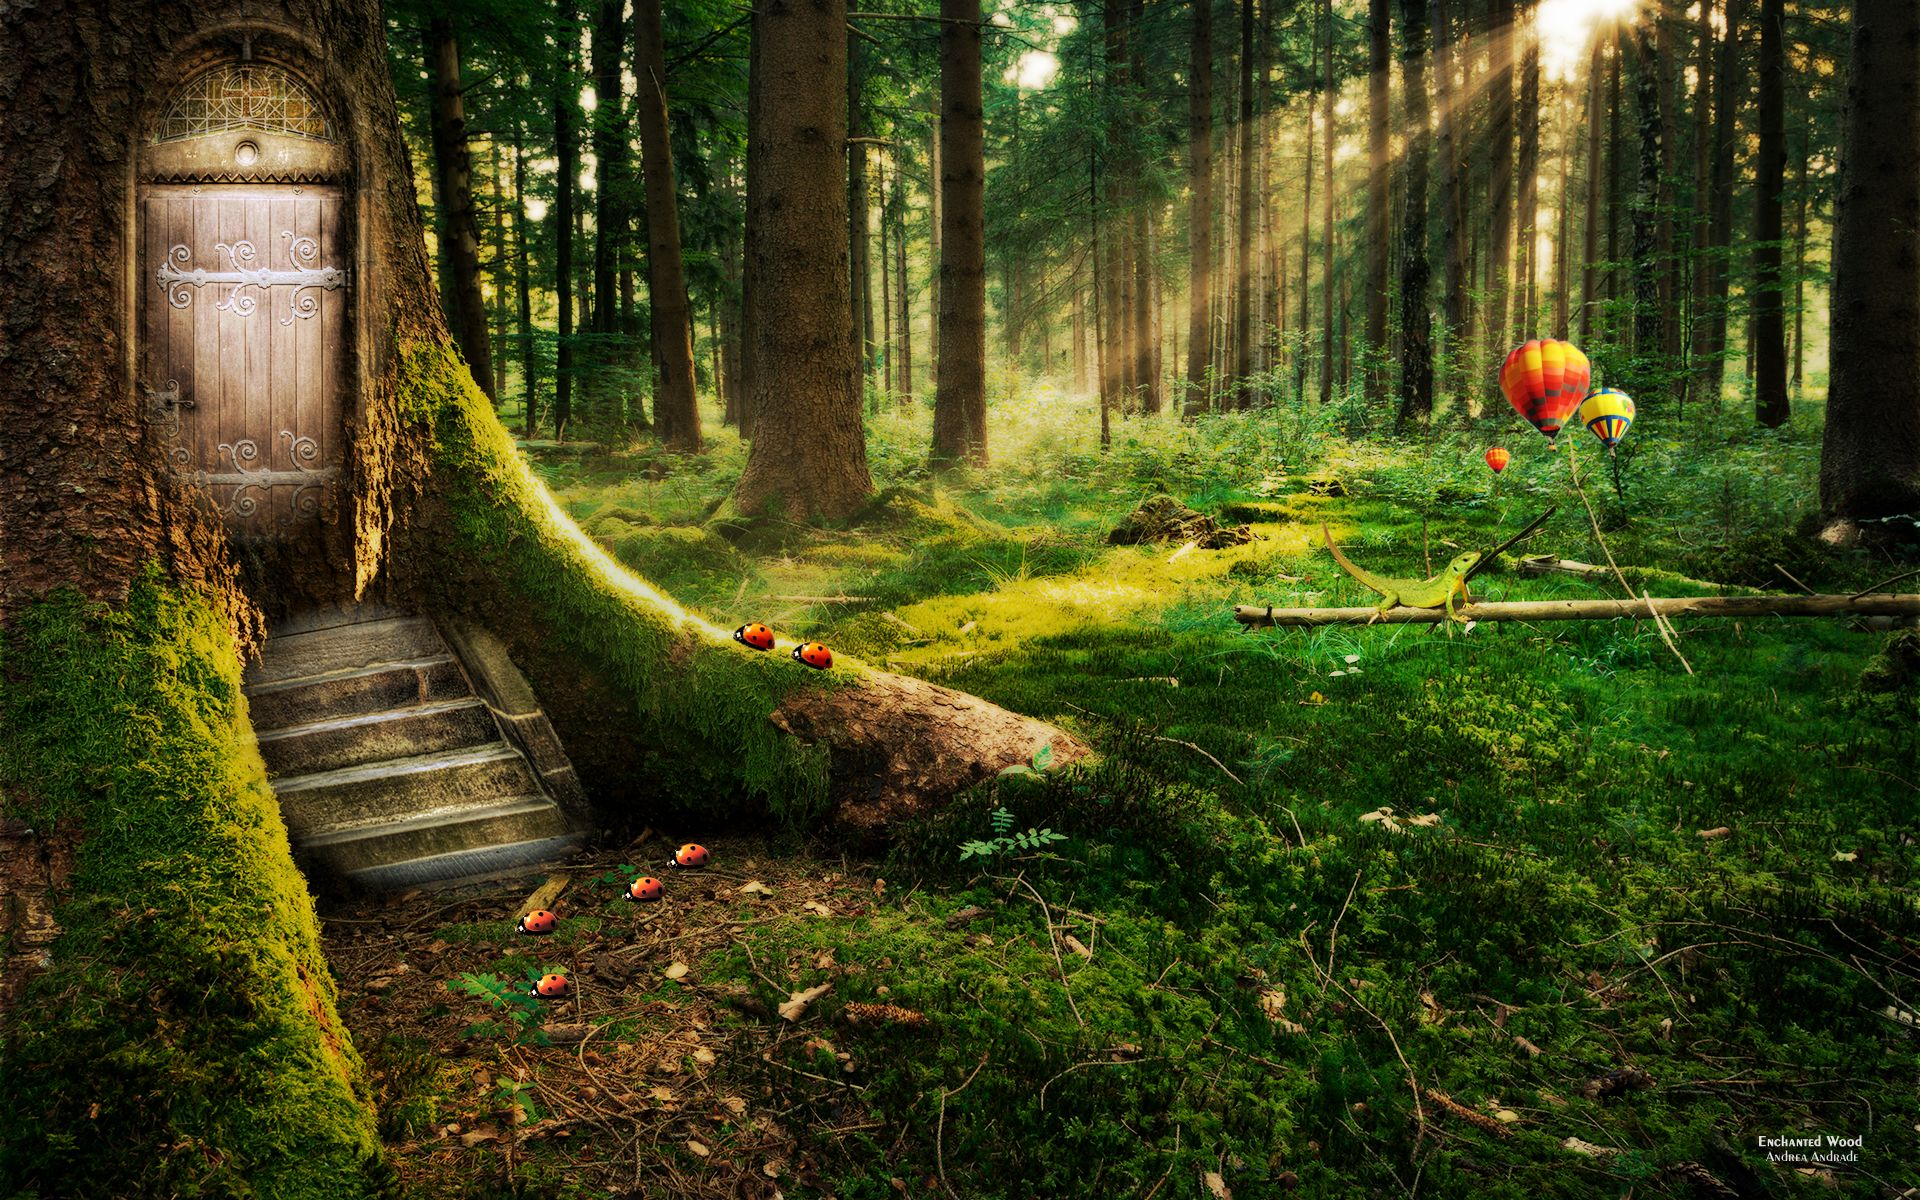 Forest Wall Paper enchanted forest | tree with a door enchanted forest hd wallpaper